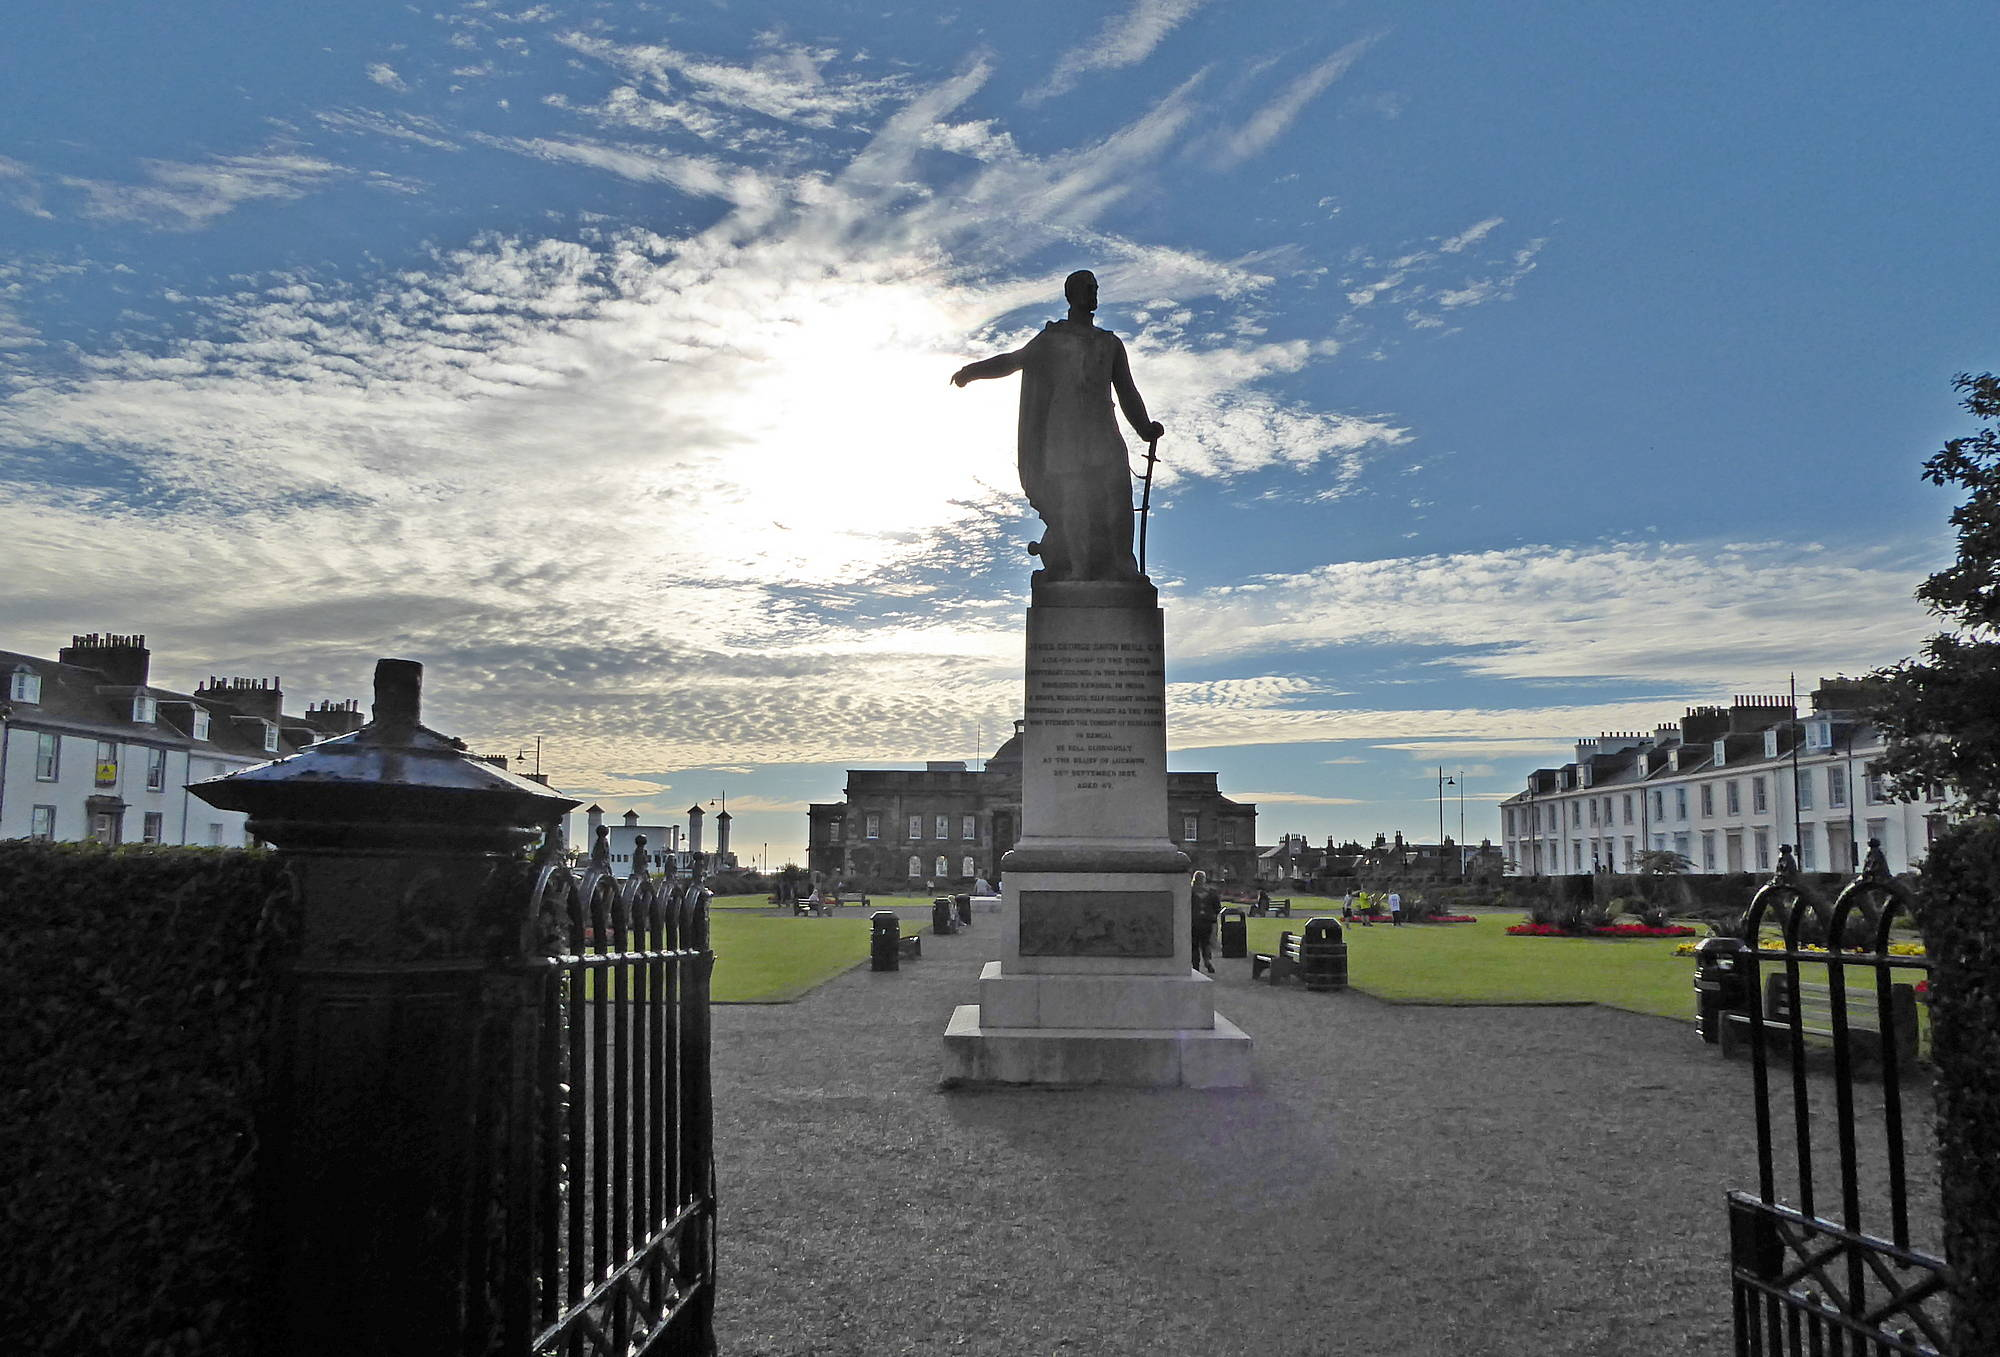 Wellington Square, Ayr